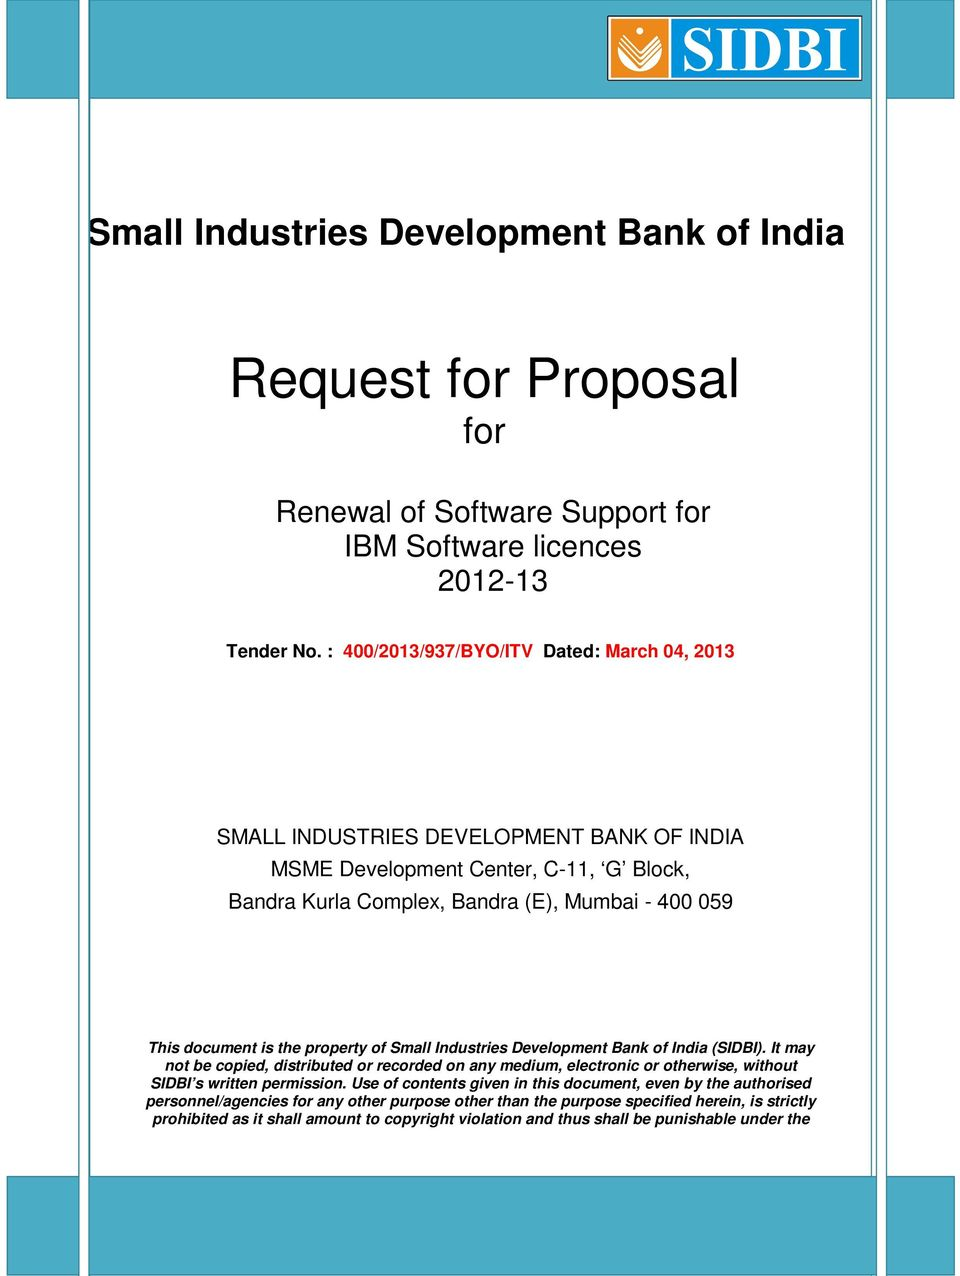 is the property of Small Industries Development Bank of India (SIDBI). It may not be copied, distributed or recorded on any medium, electronic or otherwise, without SIDBI s written permission.